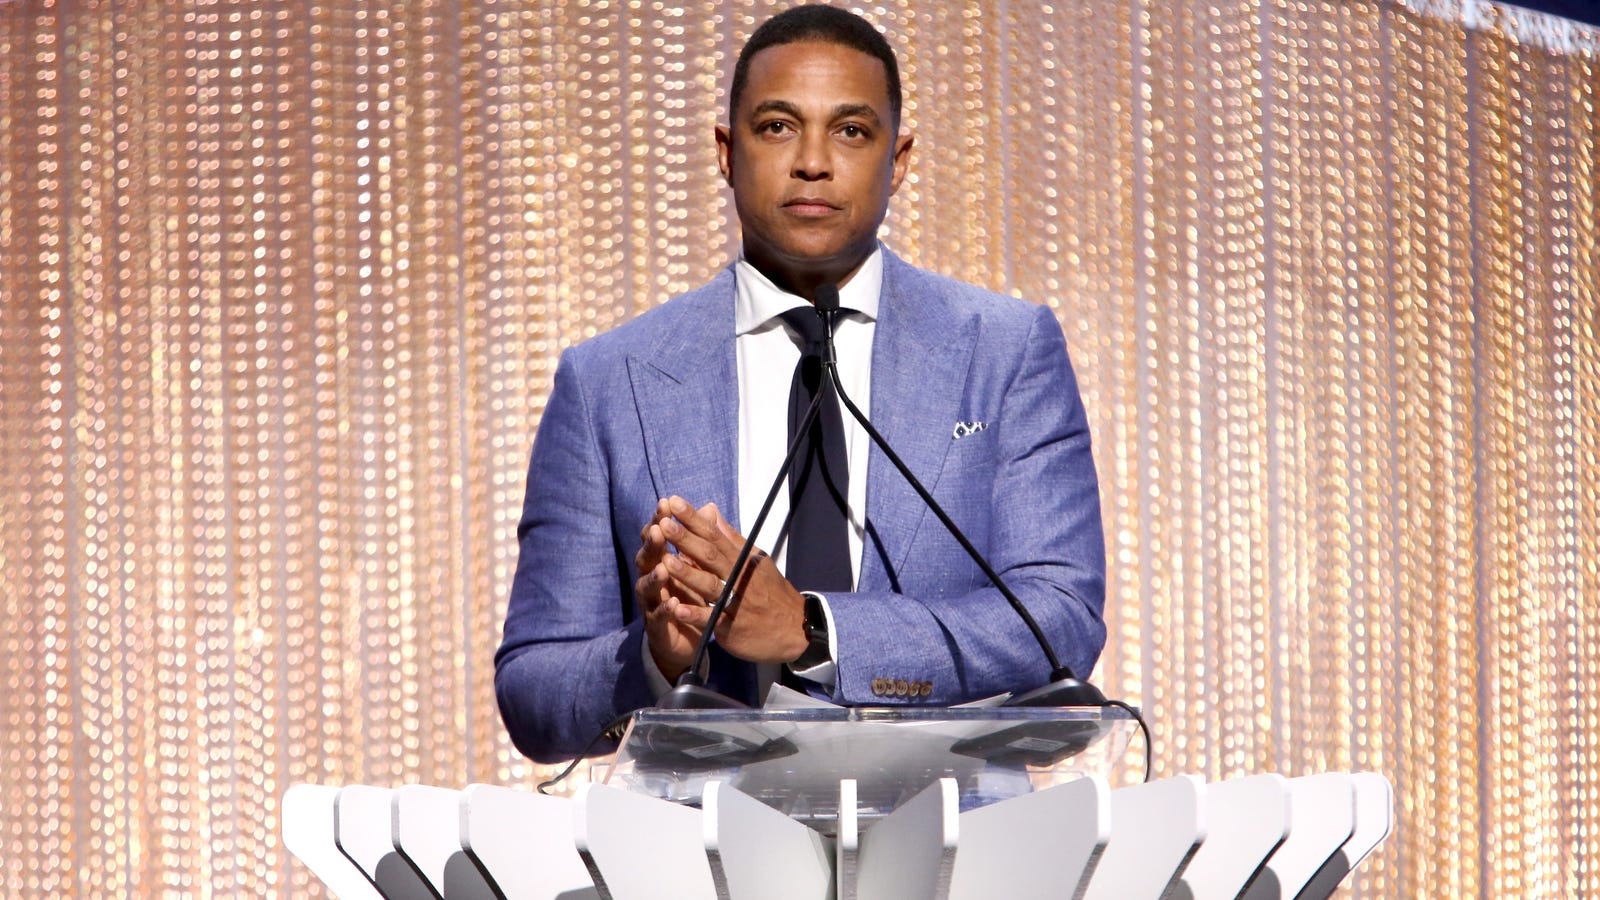 Don Lemon Sued for Alleged Assault by New York Bartender, CNN Defends News Anchor [Corrected]